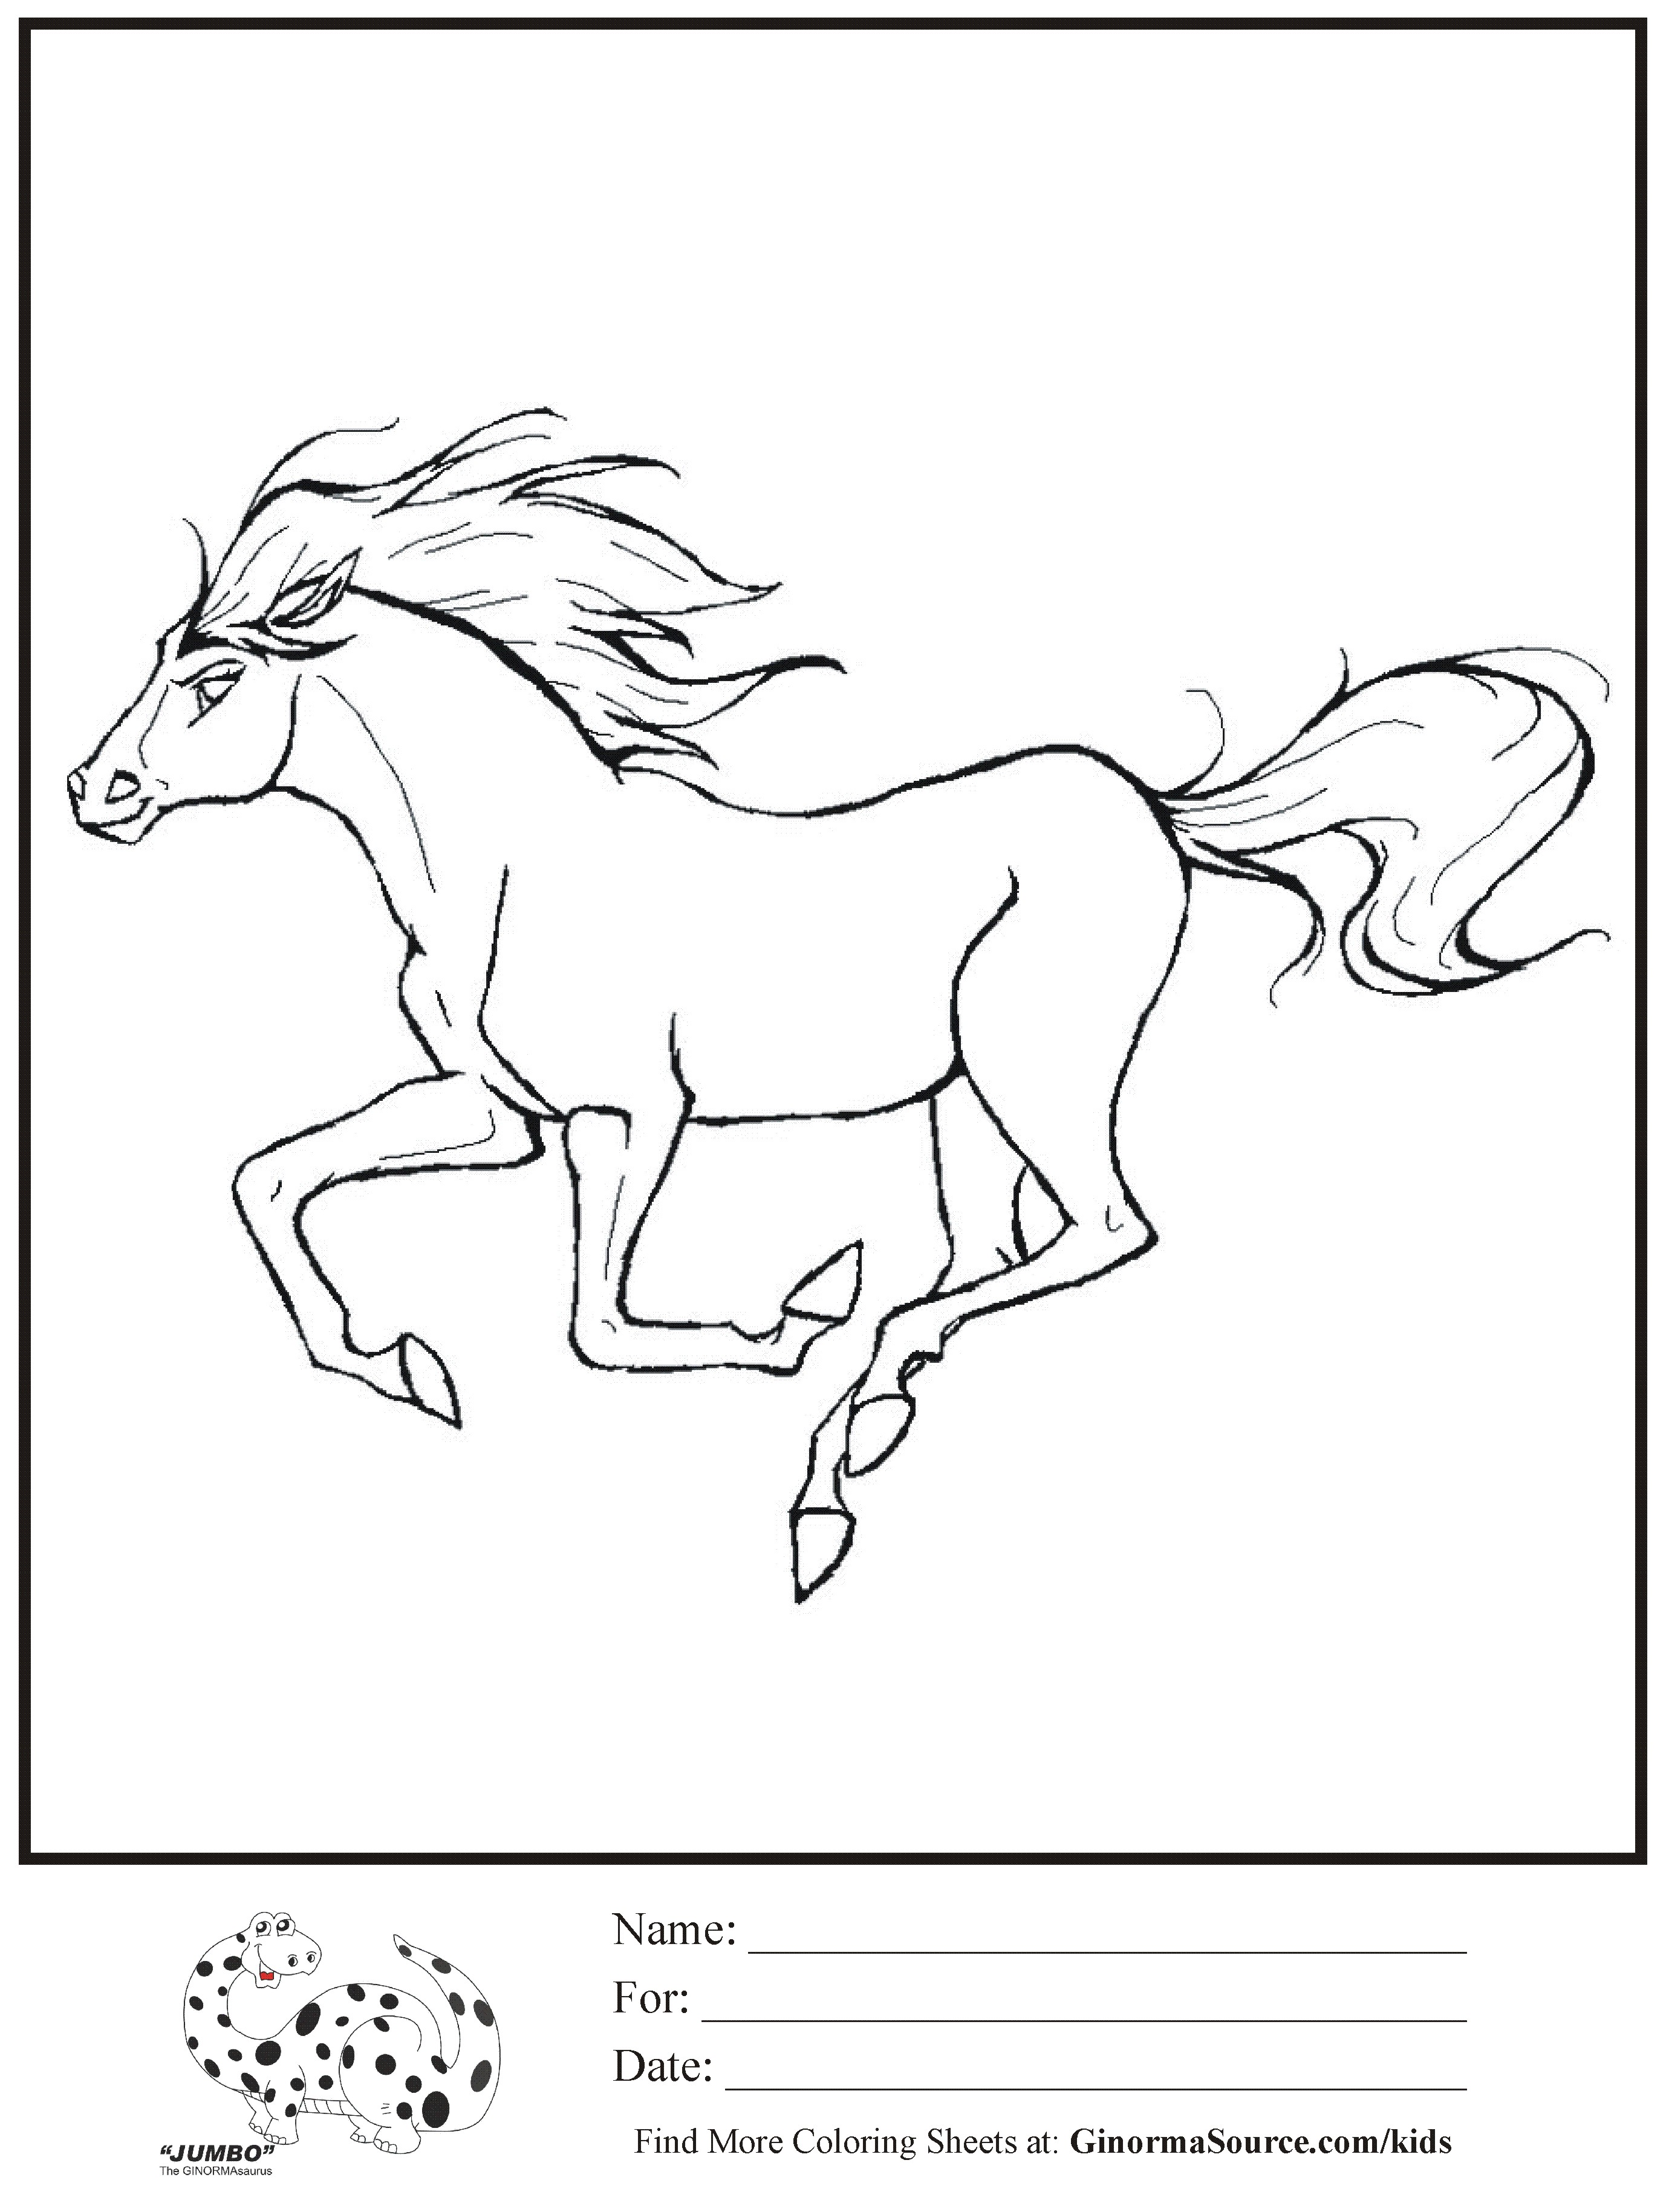 Stallion coloring #7, Download drawings